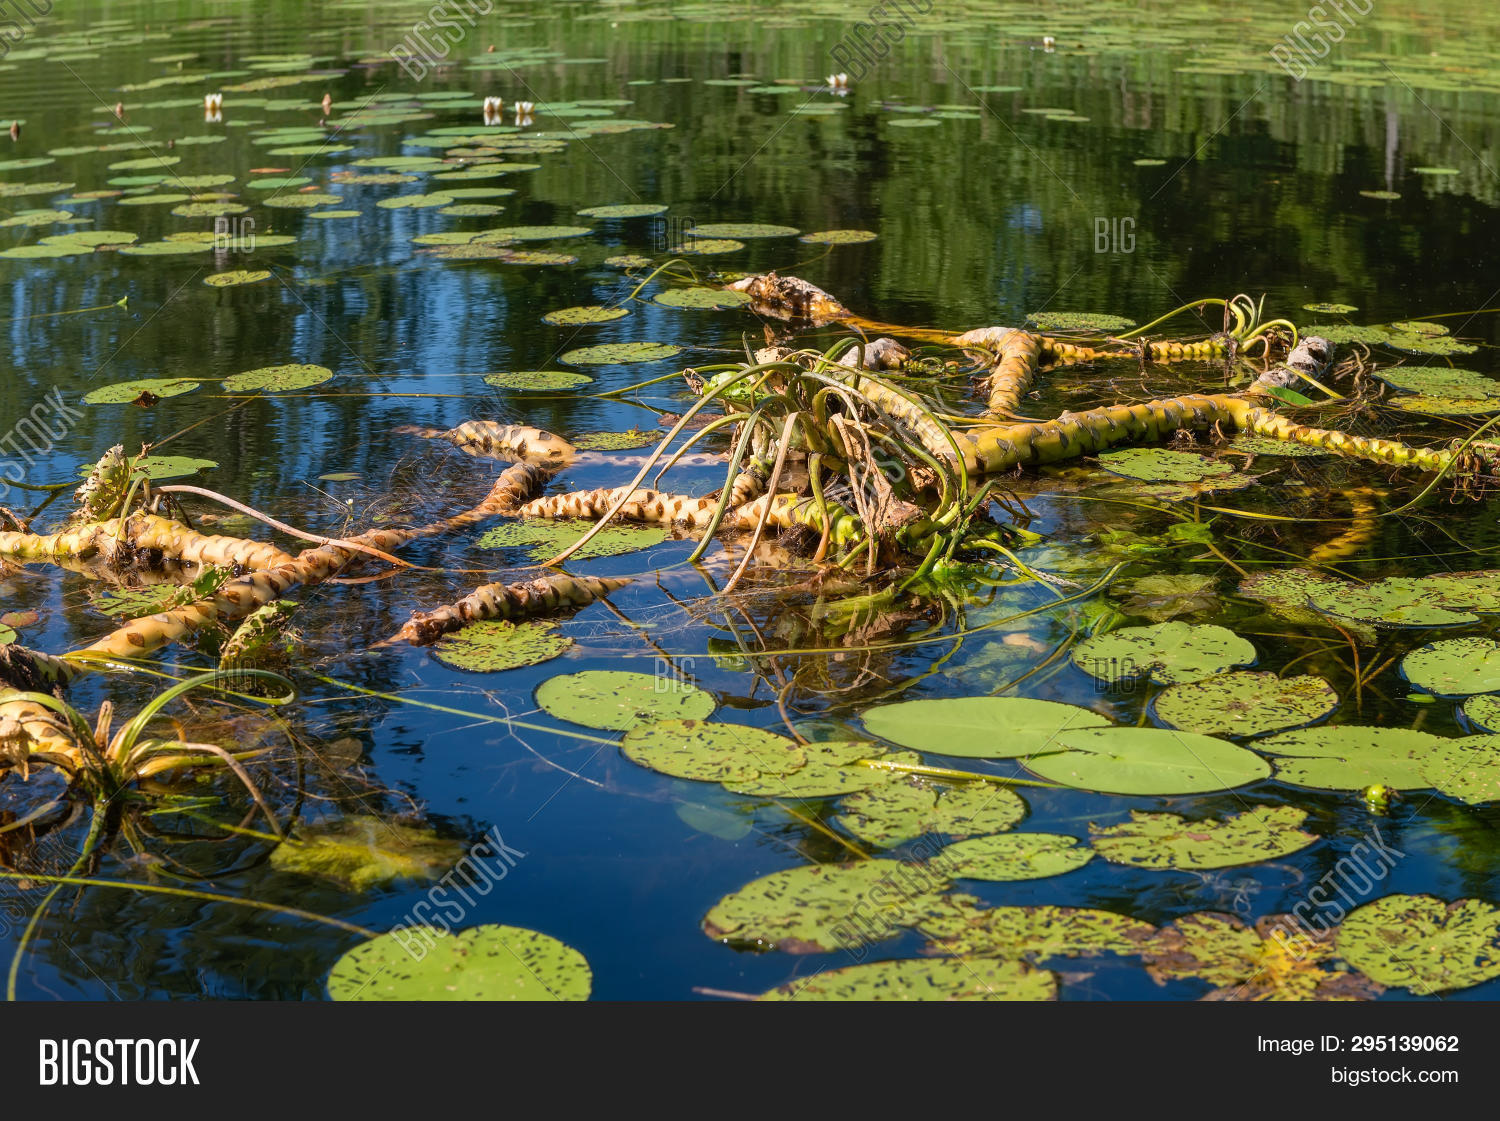 Water Lily Roots Image Photo Free Trial Bigstock